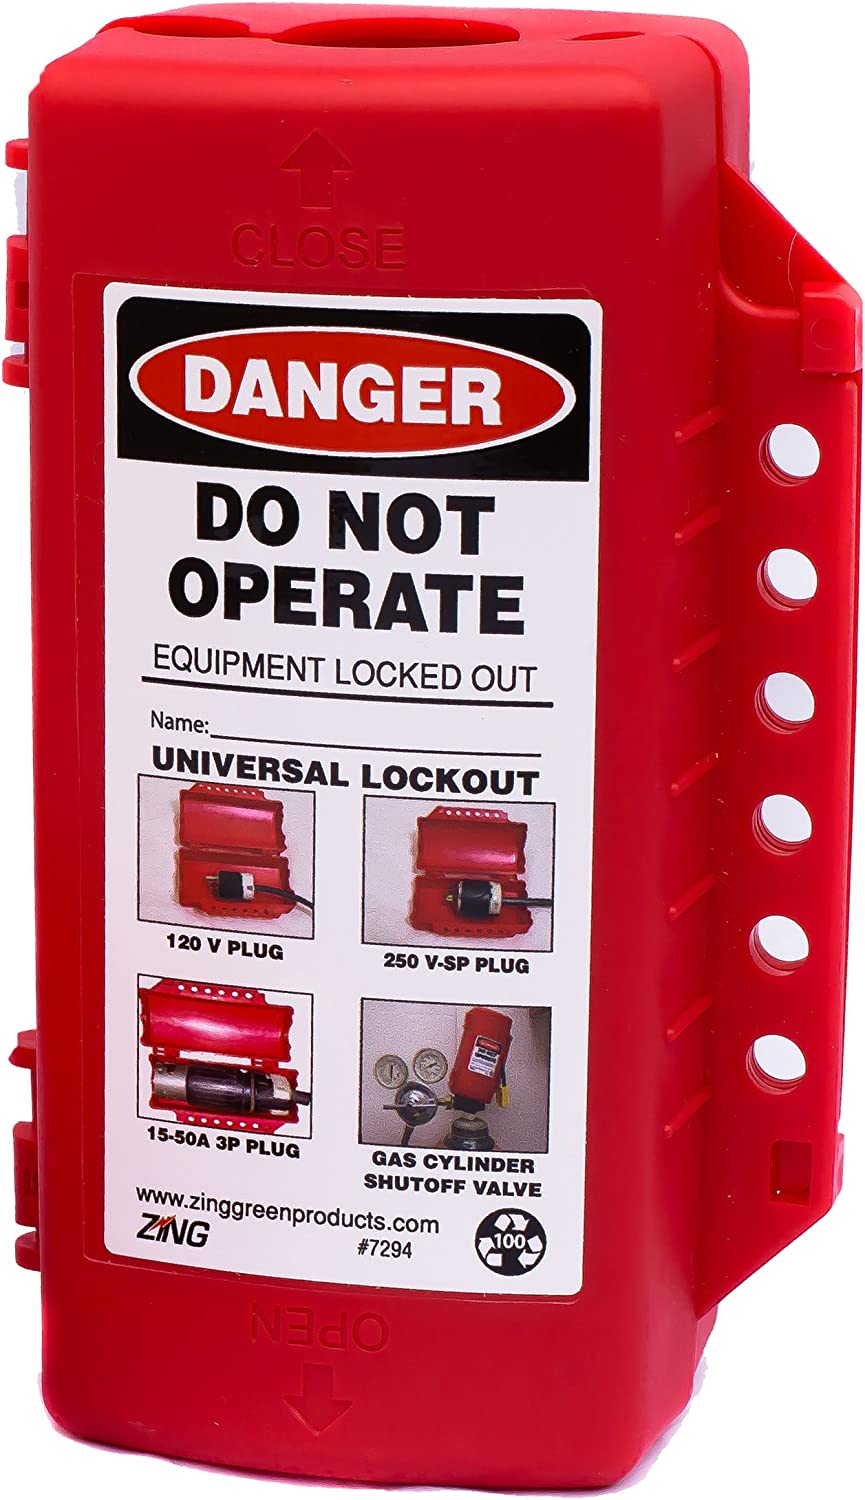 ZING 7294 RecycLockout Lockout Tagout, Universal Plug/Forklift/Cylinder Lockout, Recycled Plastic